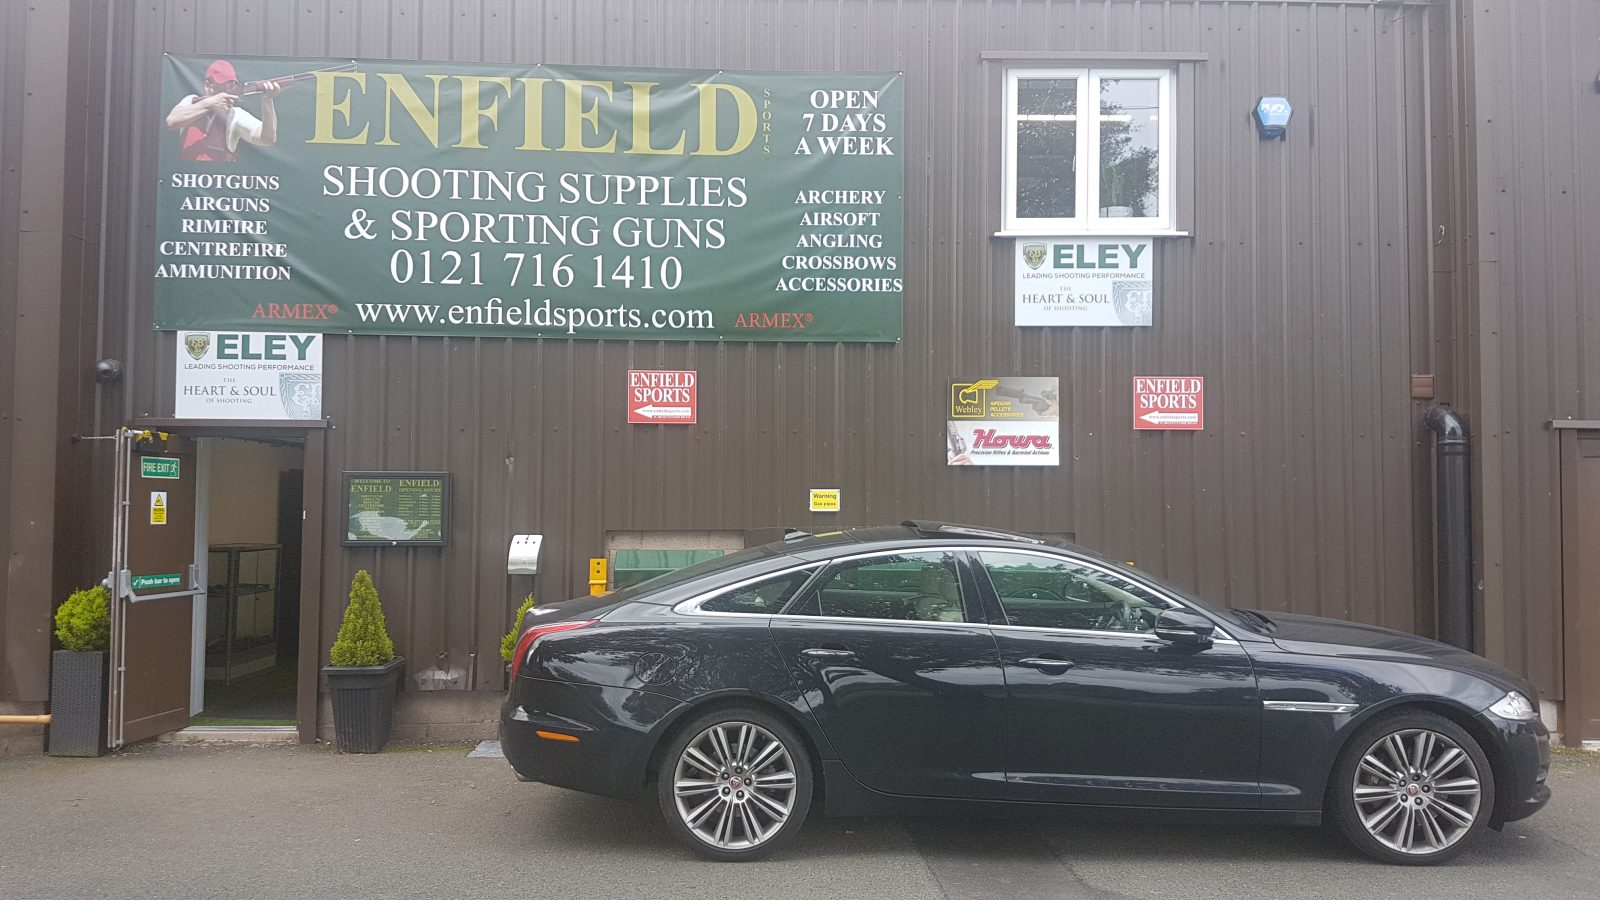 About Us - Enfield Sports